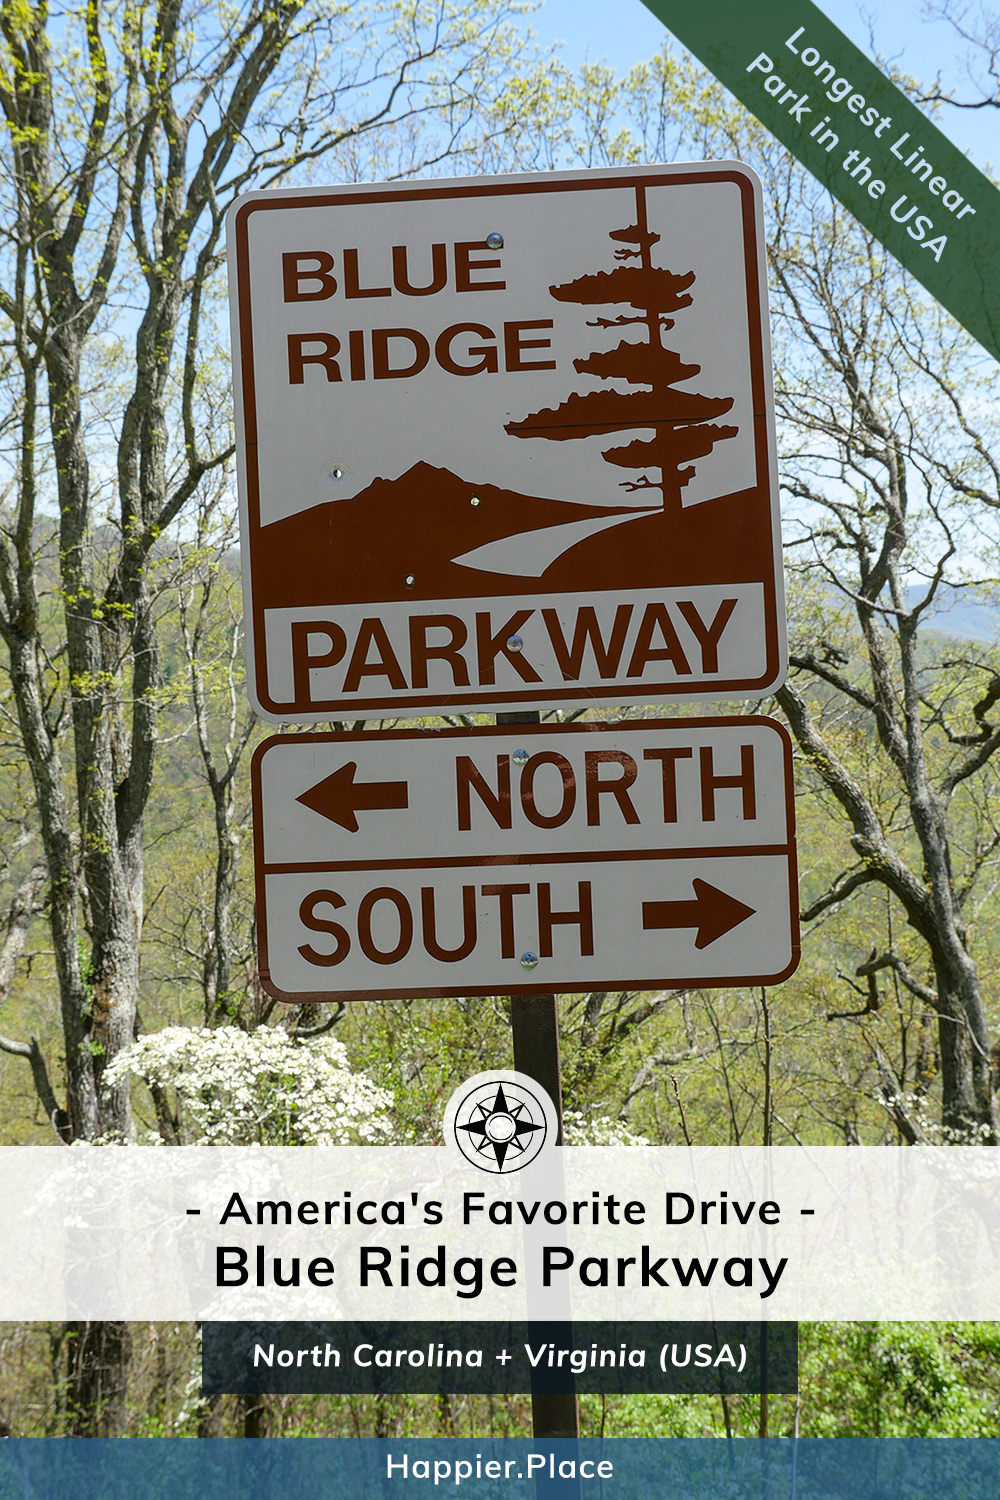 Iconic Blue Ridge Parkway sign, America's Favorite Drive and Longest Linear Park in the USA, Happier Place, Virginia, North Carolina